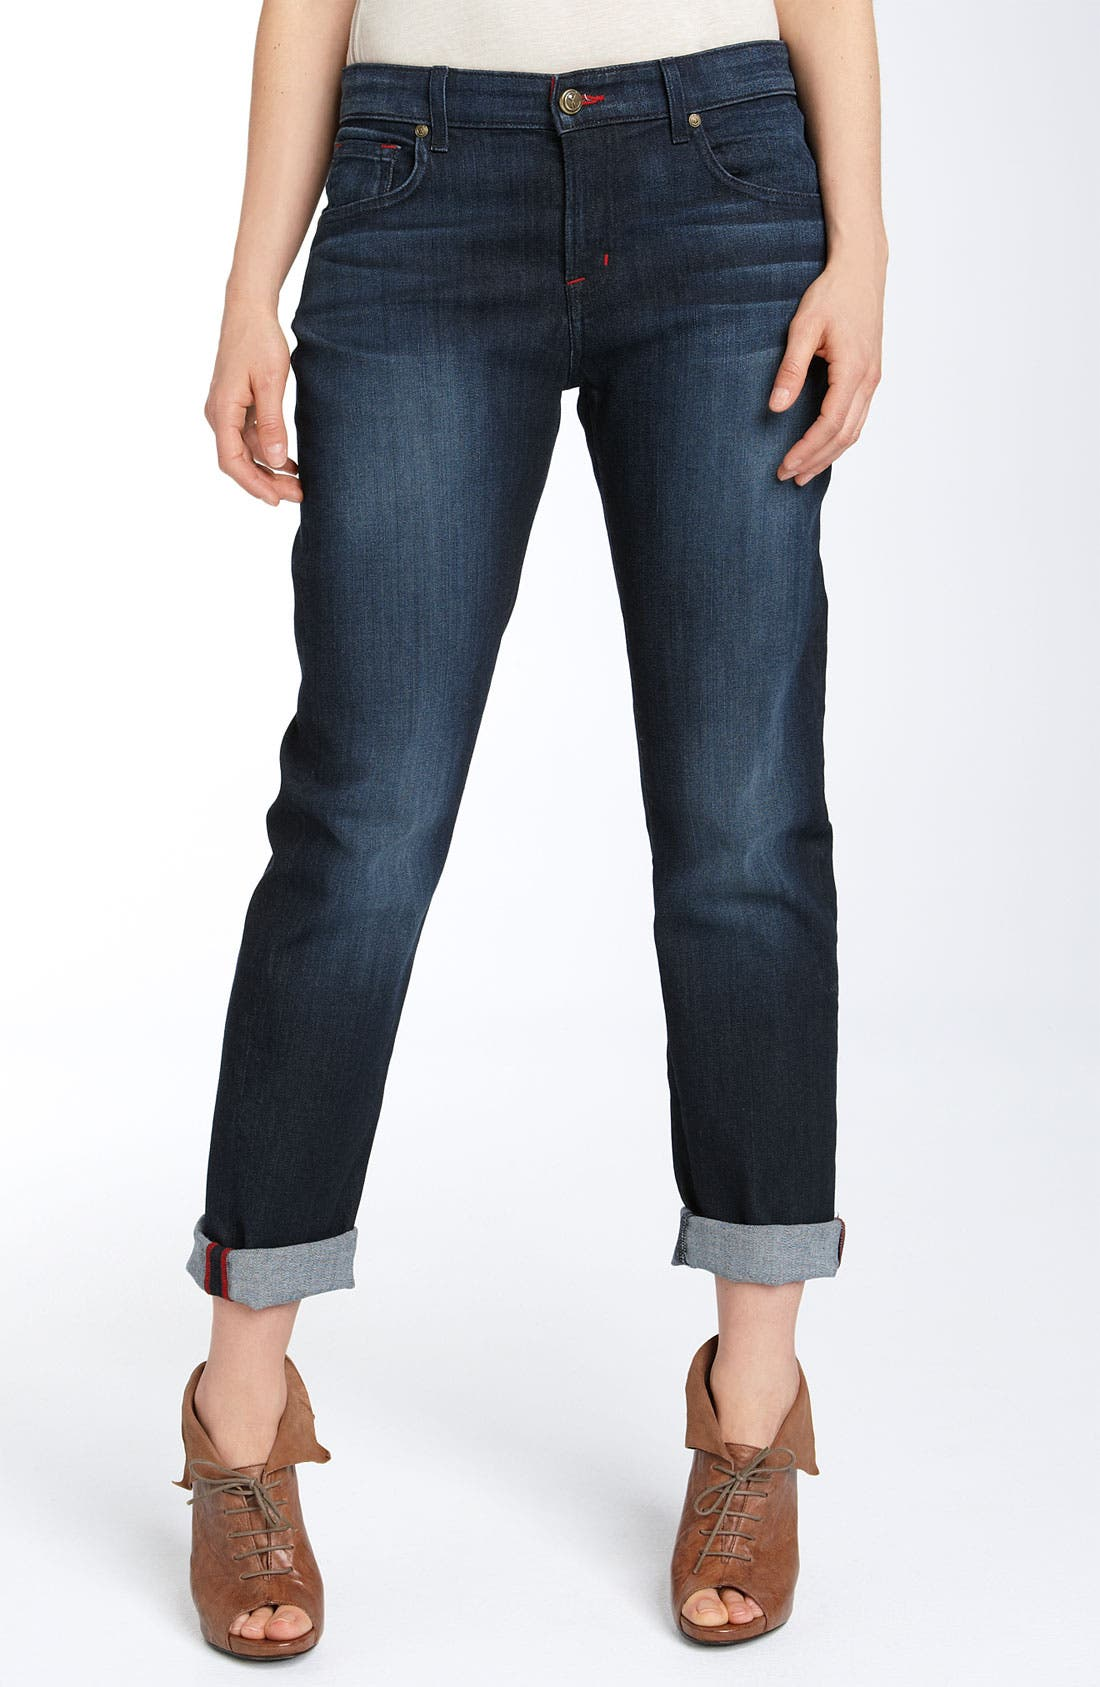 Alternate Image 2  - CJ by Cookie Johnson 'Praise' Relaxed Cropped Jeans (Blue Iris Rinse Wash)